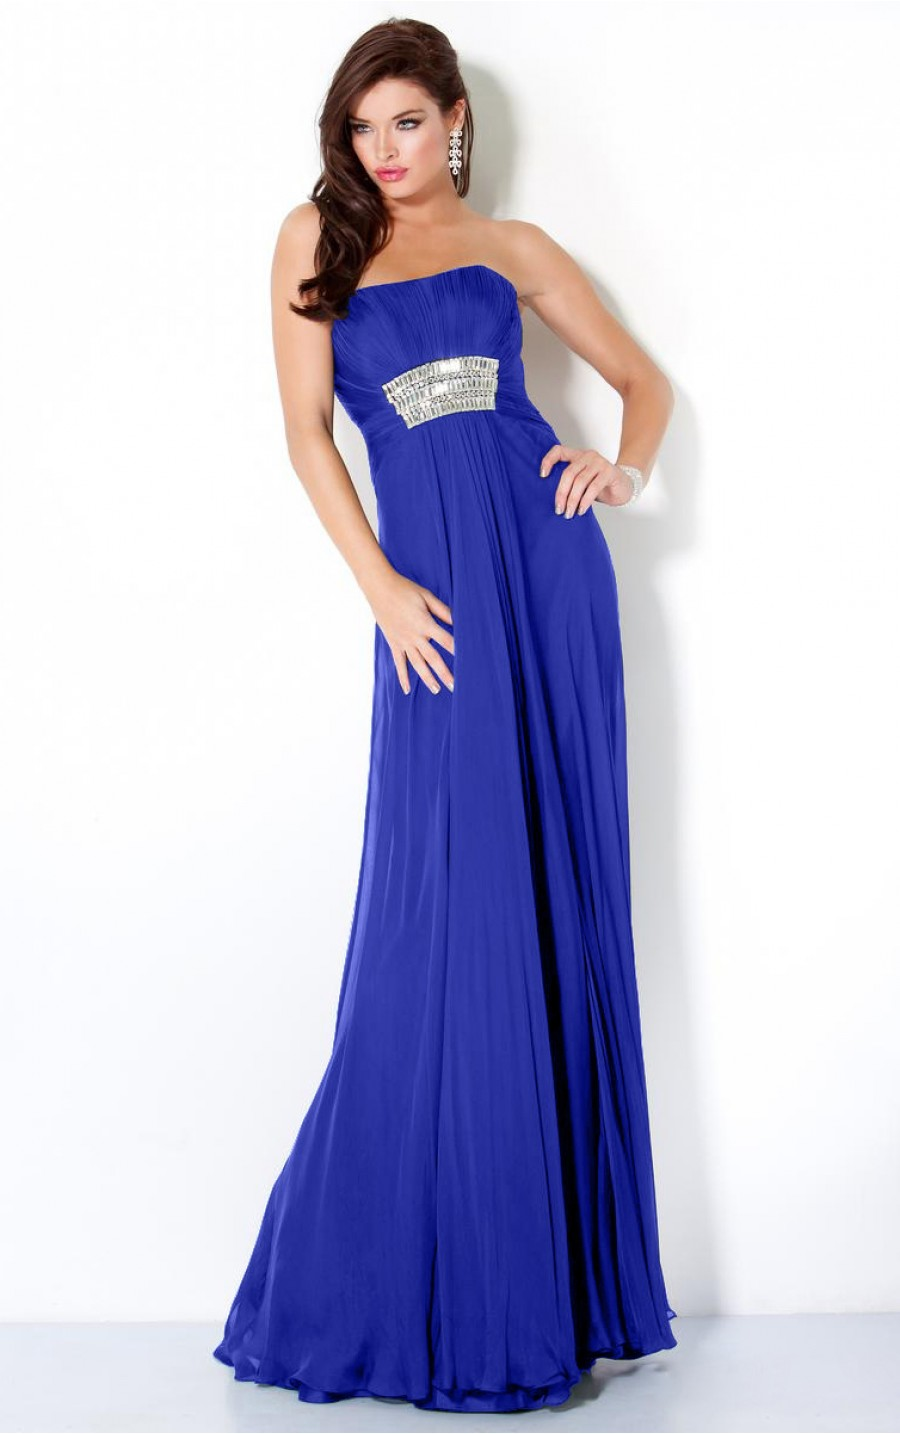 Royal Blue Bridesmaid Dress - All About Wedding